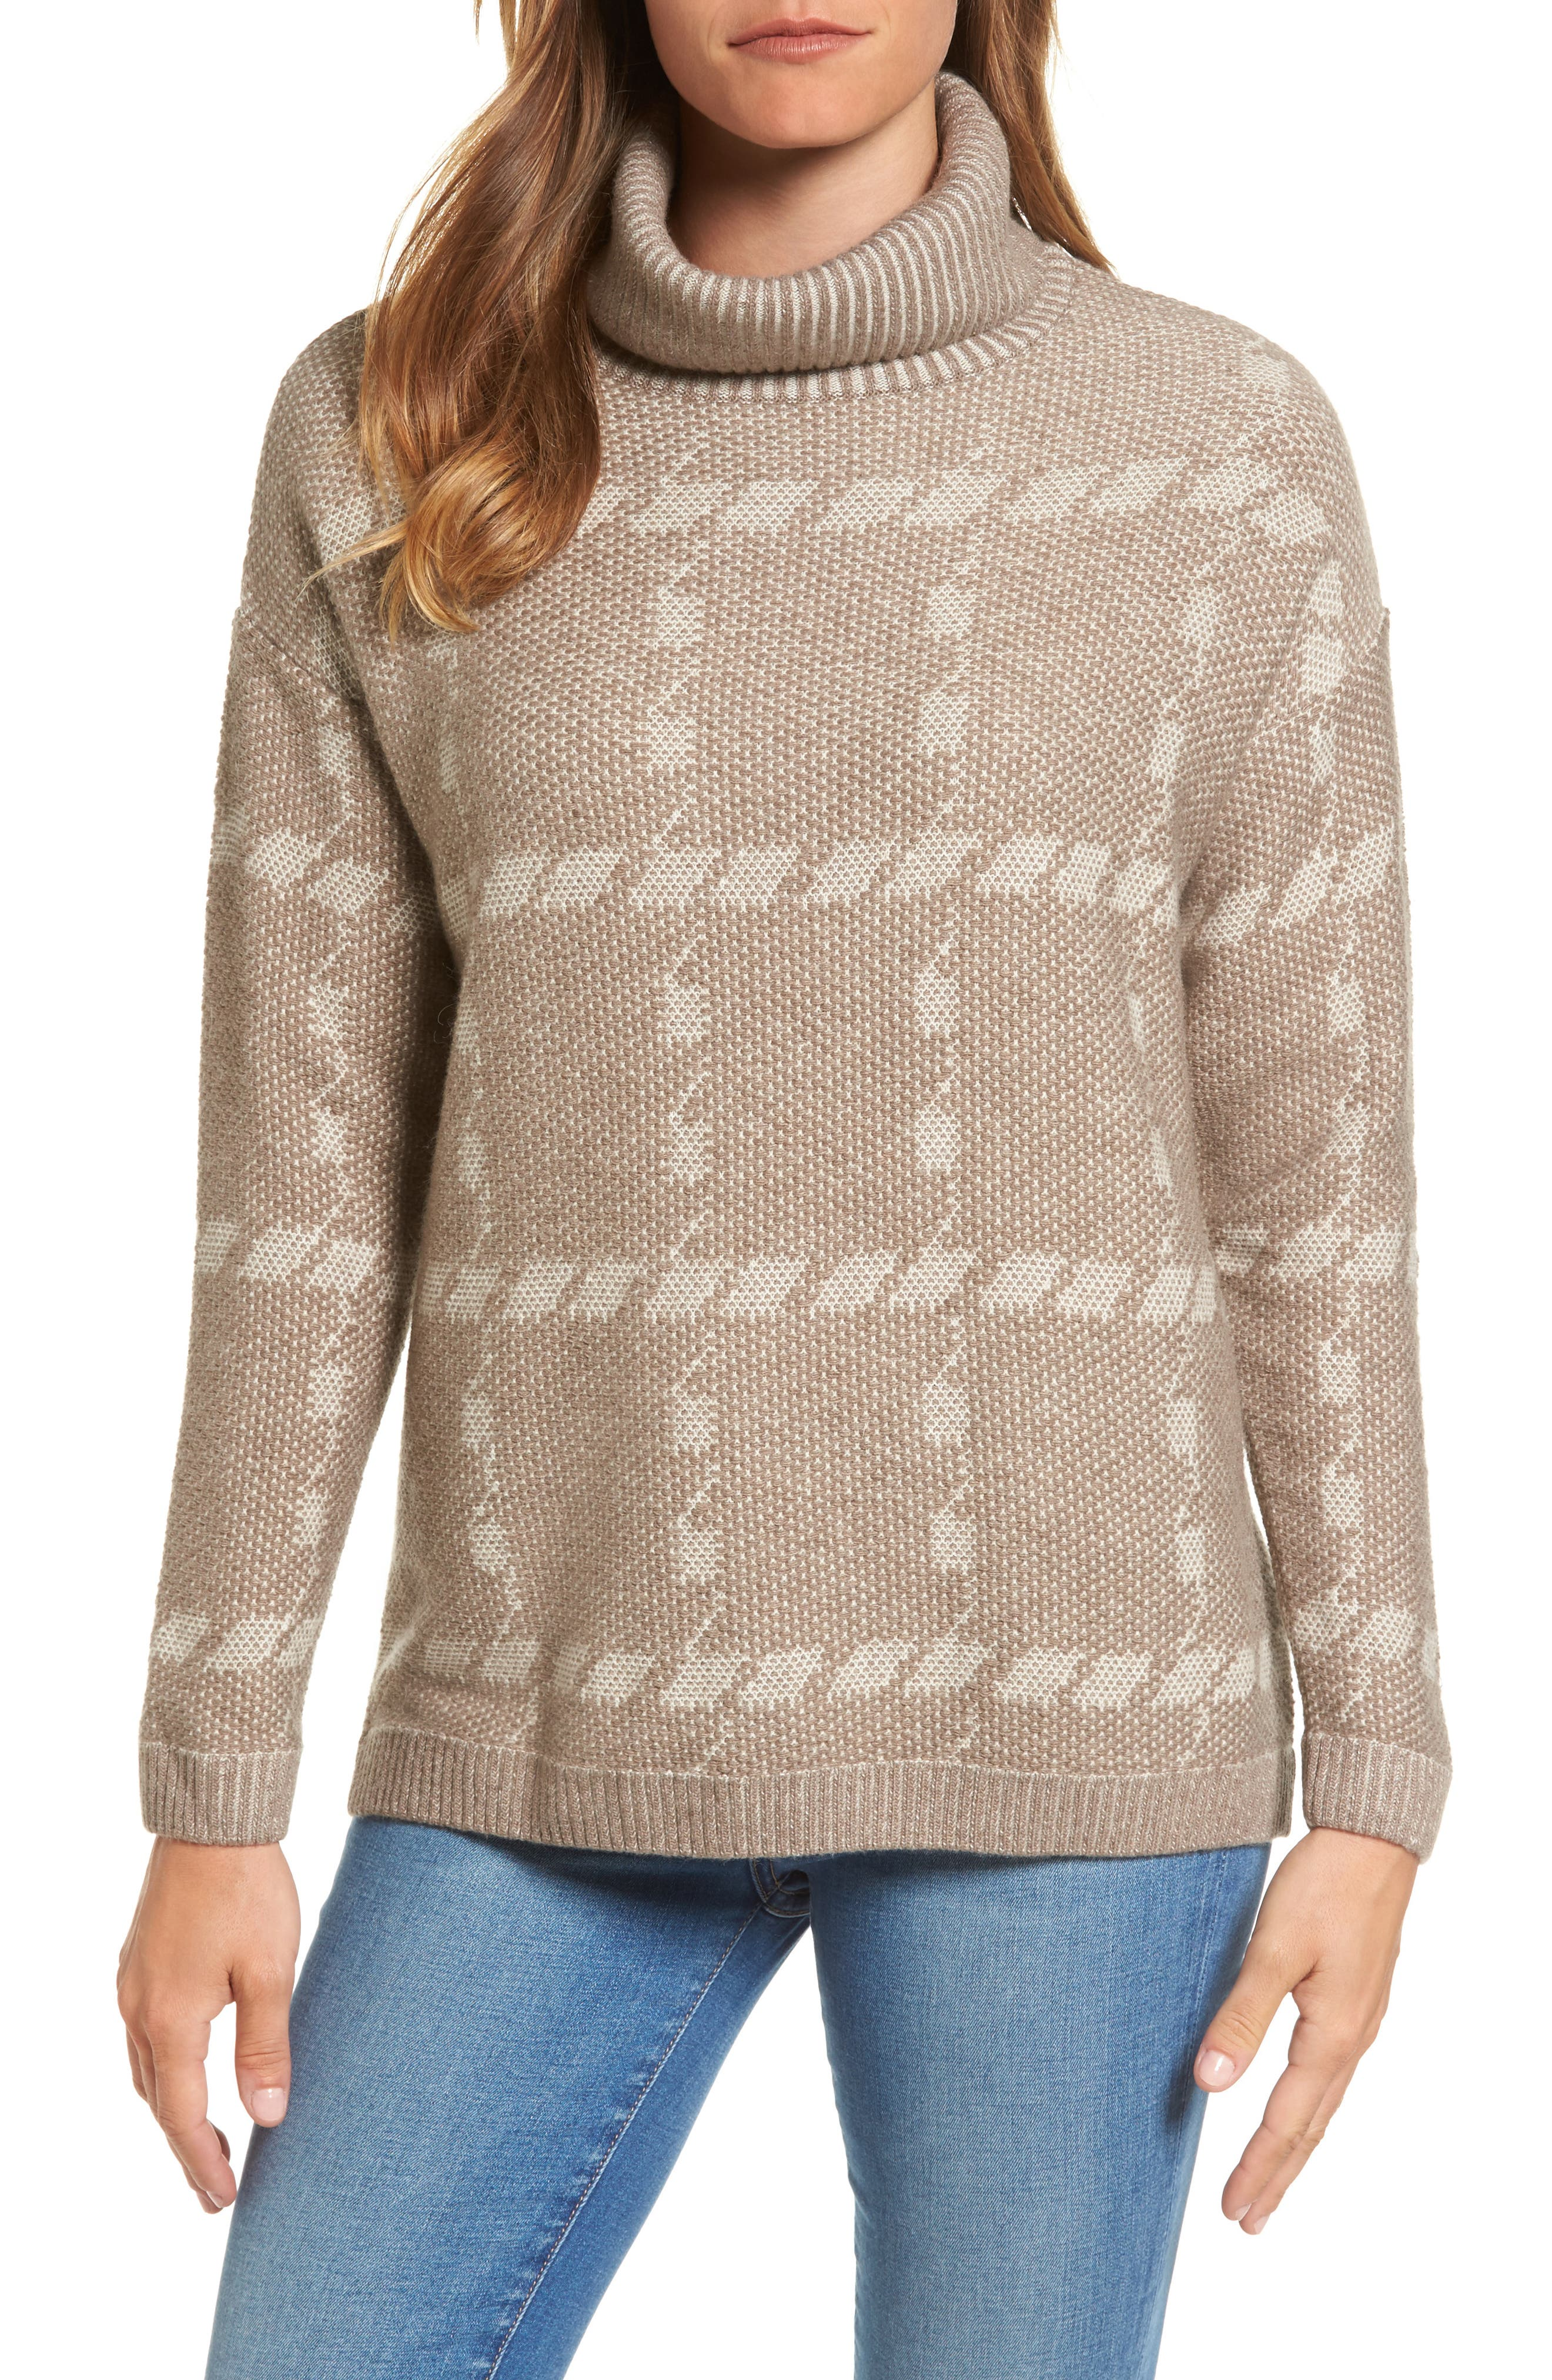 Barbour Glen Knit Merino Wool Blend Turtleneck Sweater